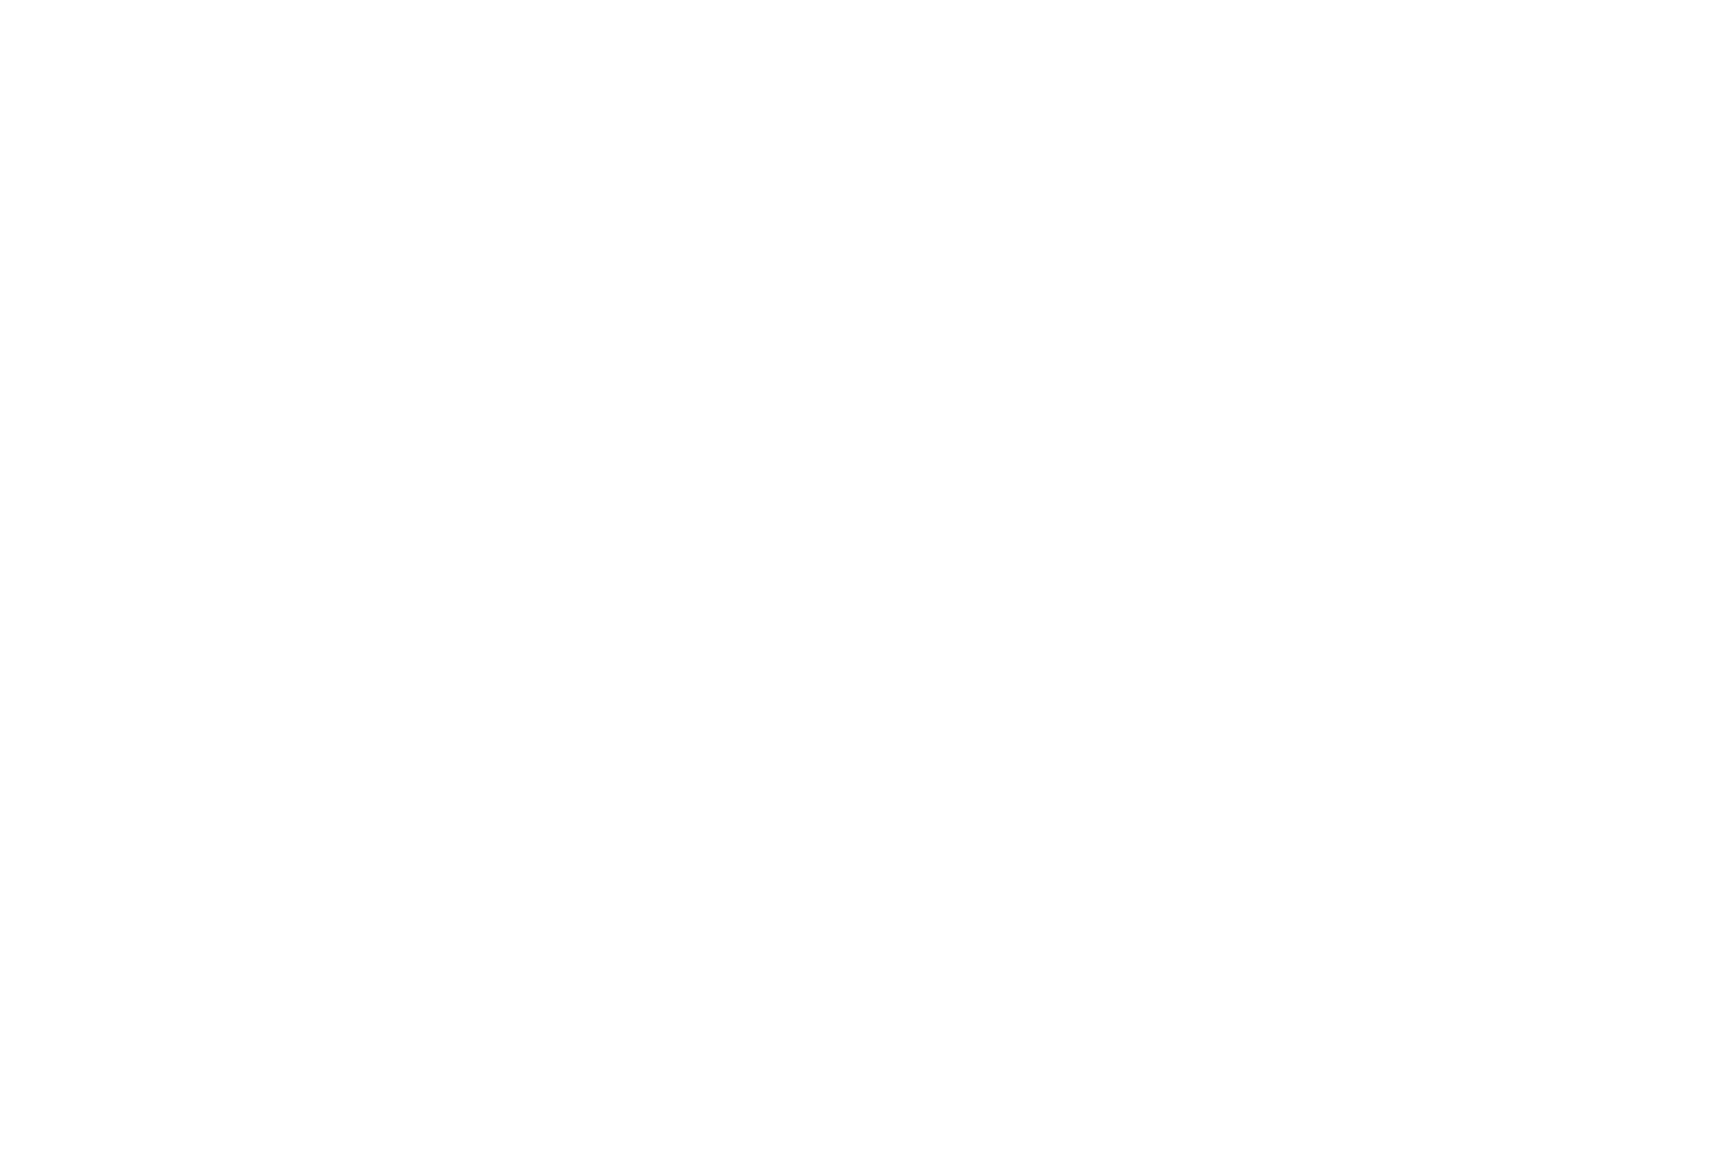 FINALIST - Lit Laughs International Comedy Film Festival - 2020